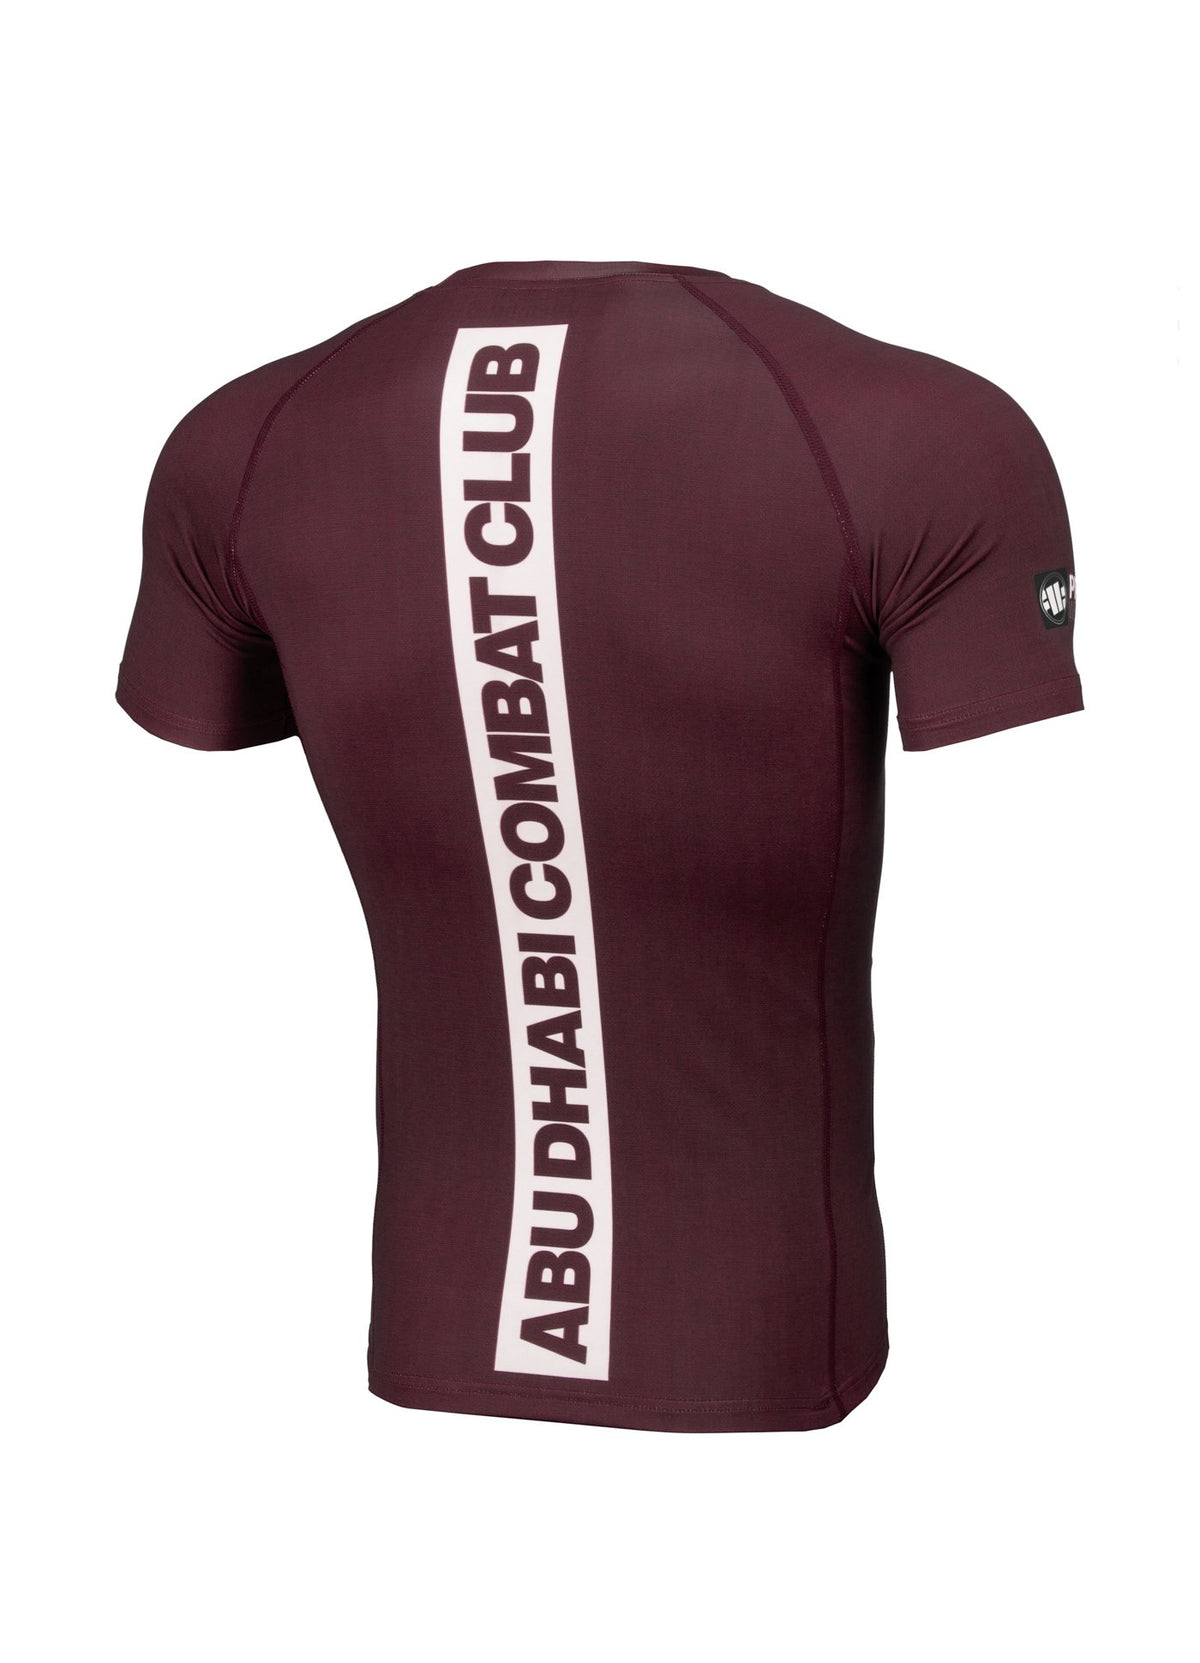 ADCC HILLTOP Short Sleeve Rashguard BURGUNDY - Pitbull West Coast U.S.A.